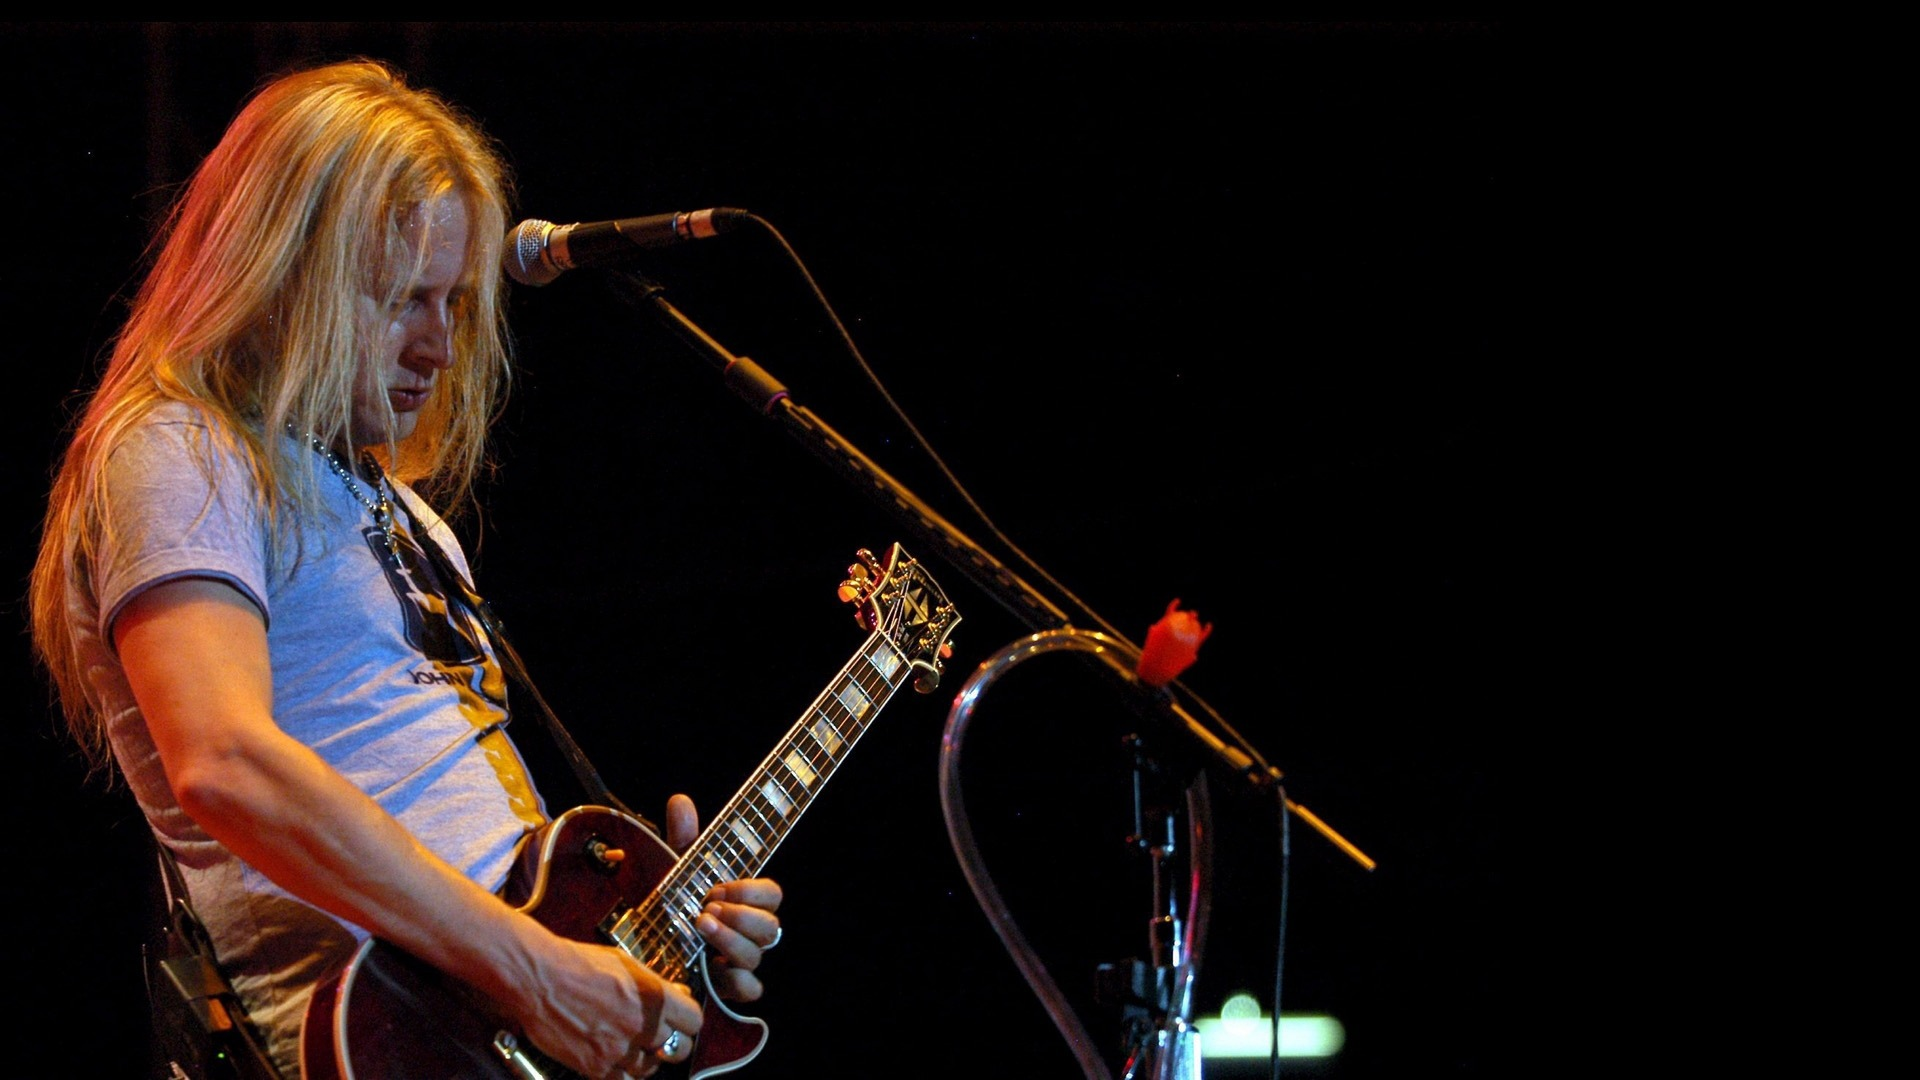 Download wallpaper 1920x1080 jerry cantrell guitar microphone 1920x1080